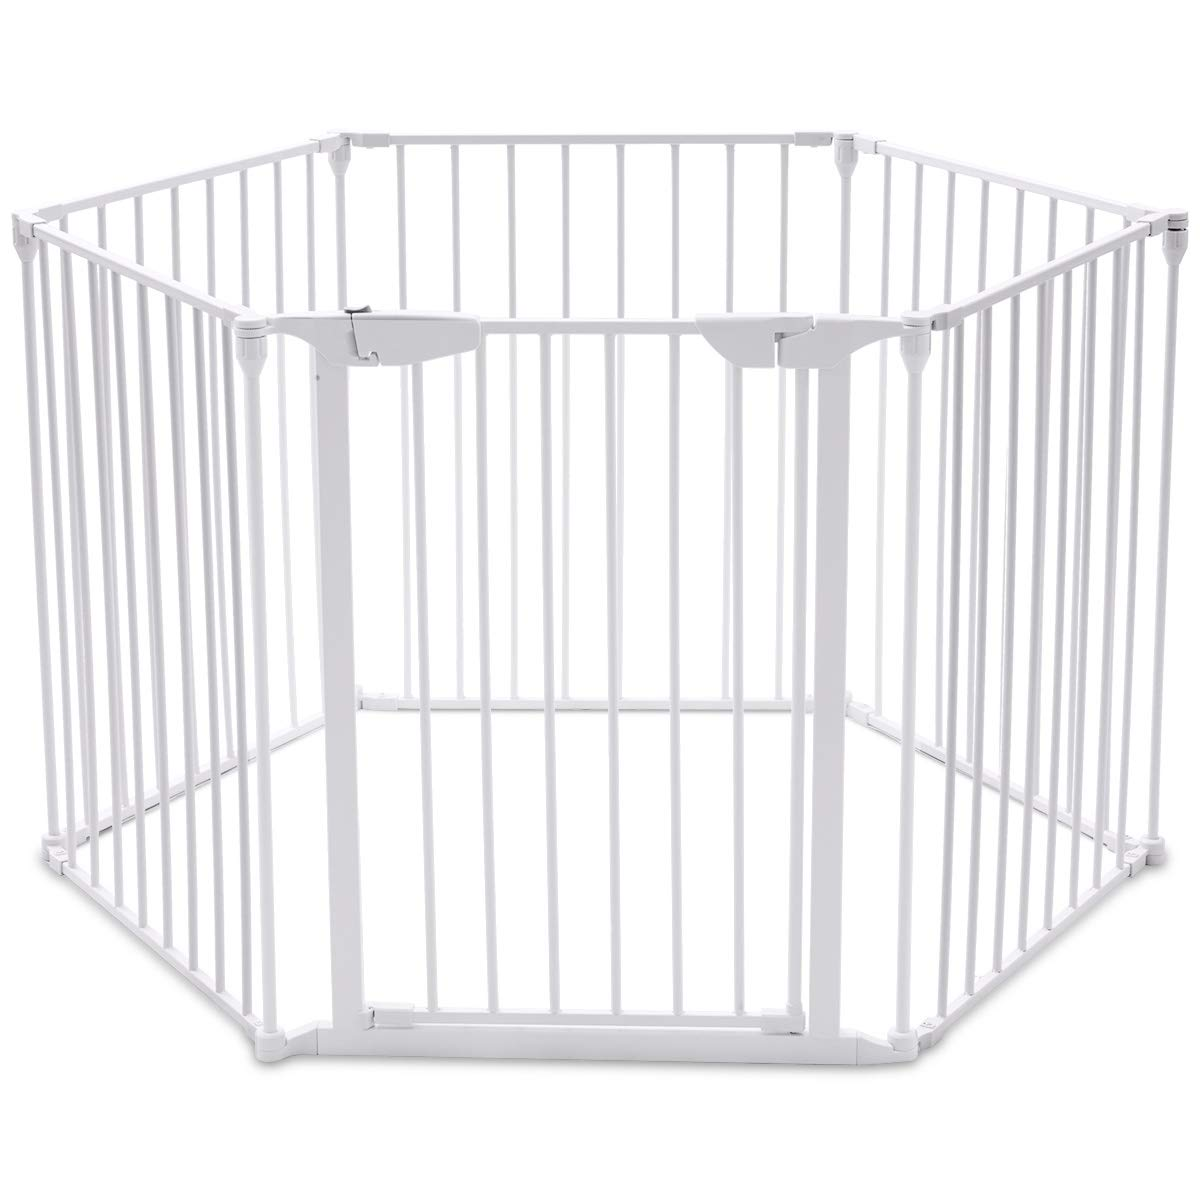 Costzon Baby Safety Gate, 4-in-1 Fireplace Fence, Wide Barrier Gate with Walk-Through Door in Two Directions, Add/Decrease Panels Directly, Wall-Mount Metal Gate for Pet & Child, Door (White, 6-Panel)